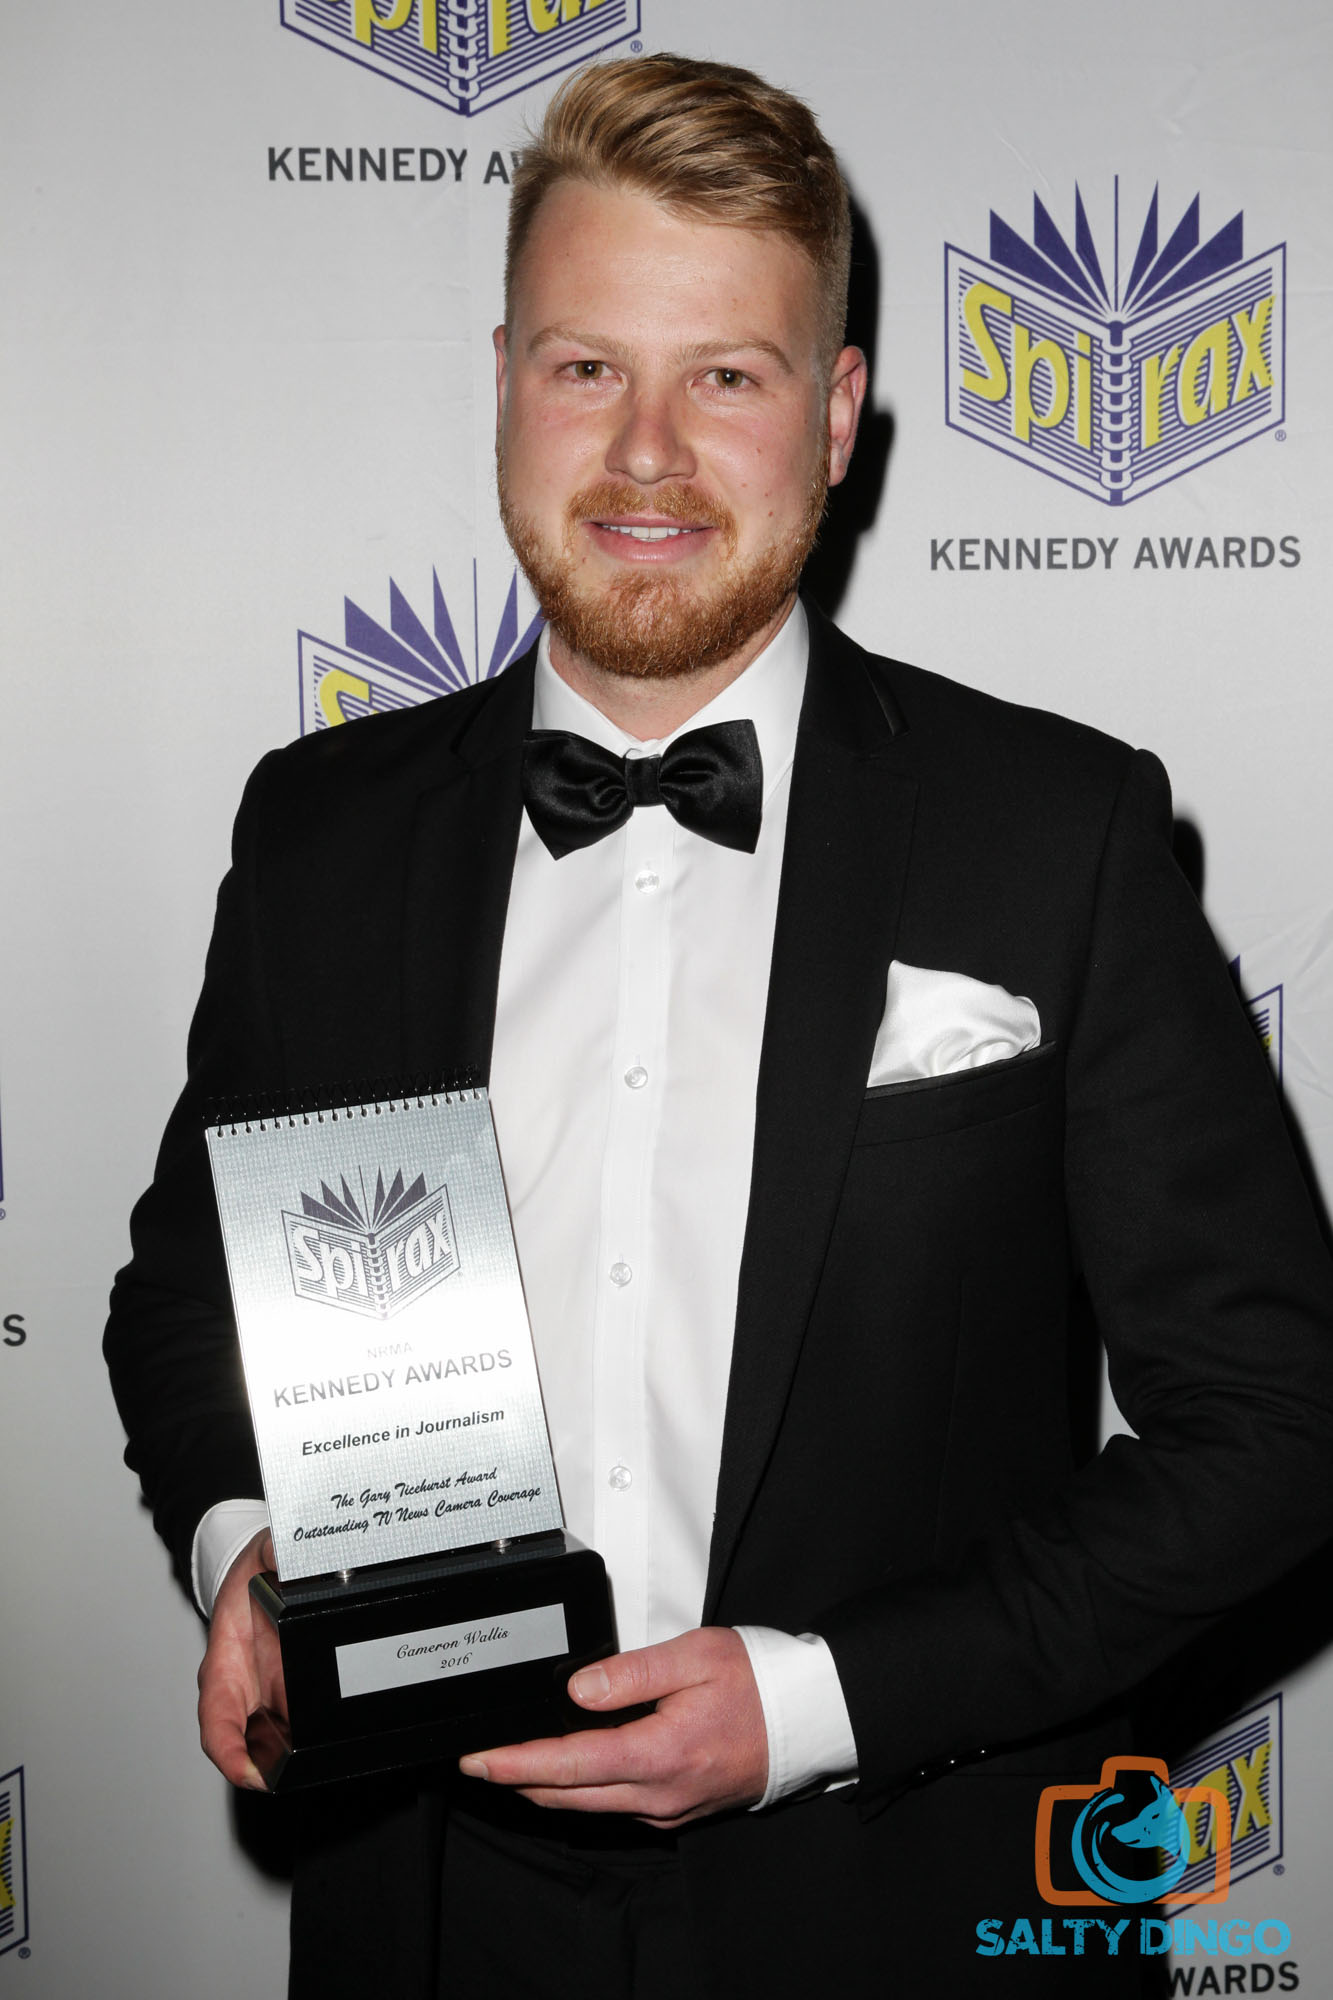 Cameron Wallis, 2016 NRMA Kennedy Awards. Picture © Salty Dingo 2016